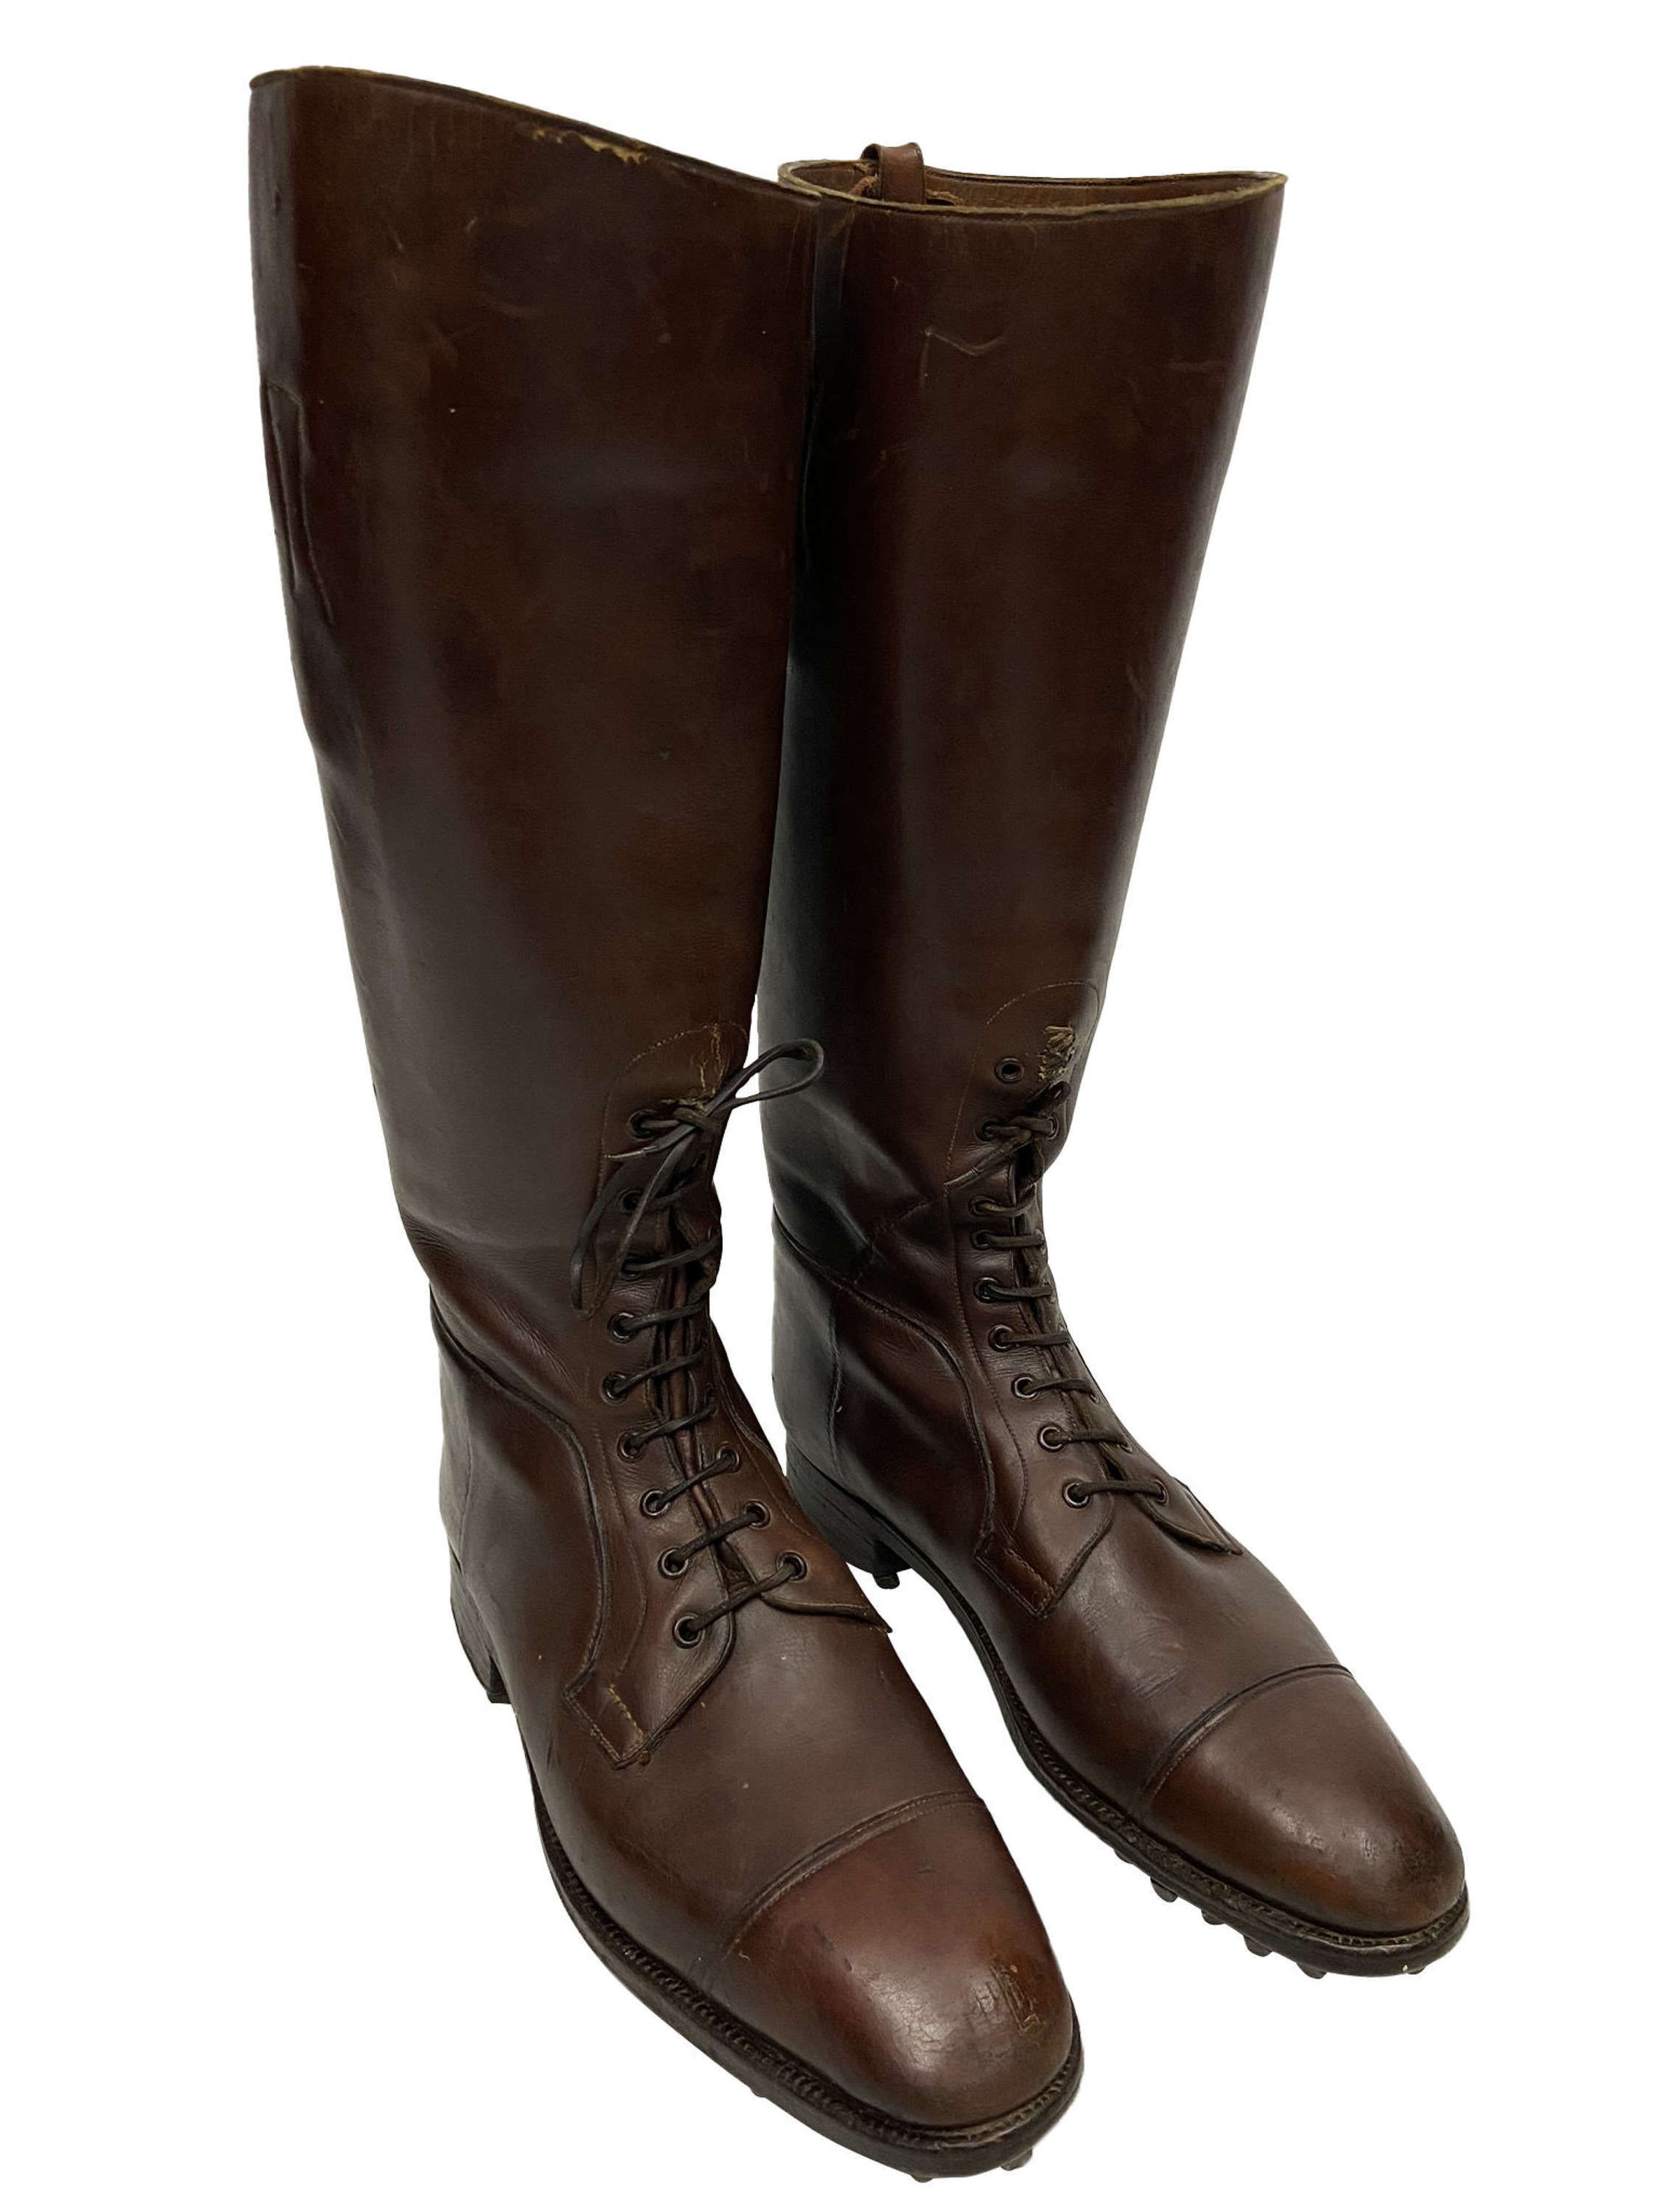 Original British Army Officers Field Boots by 'Manfield & Sons'